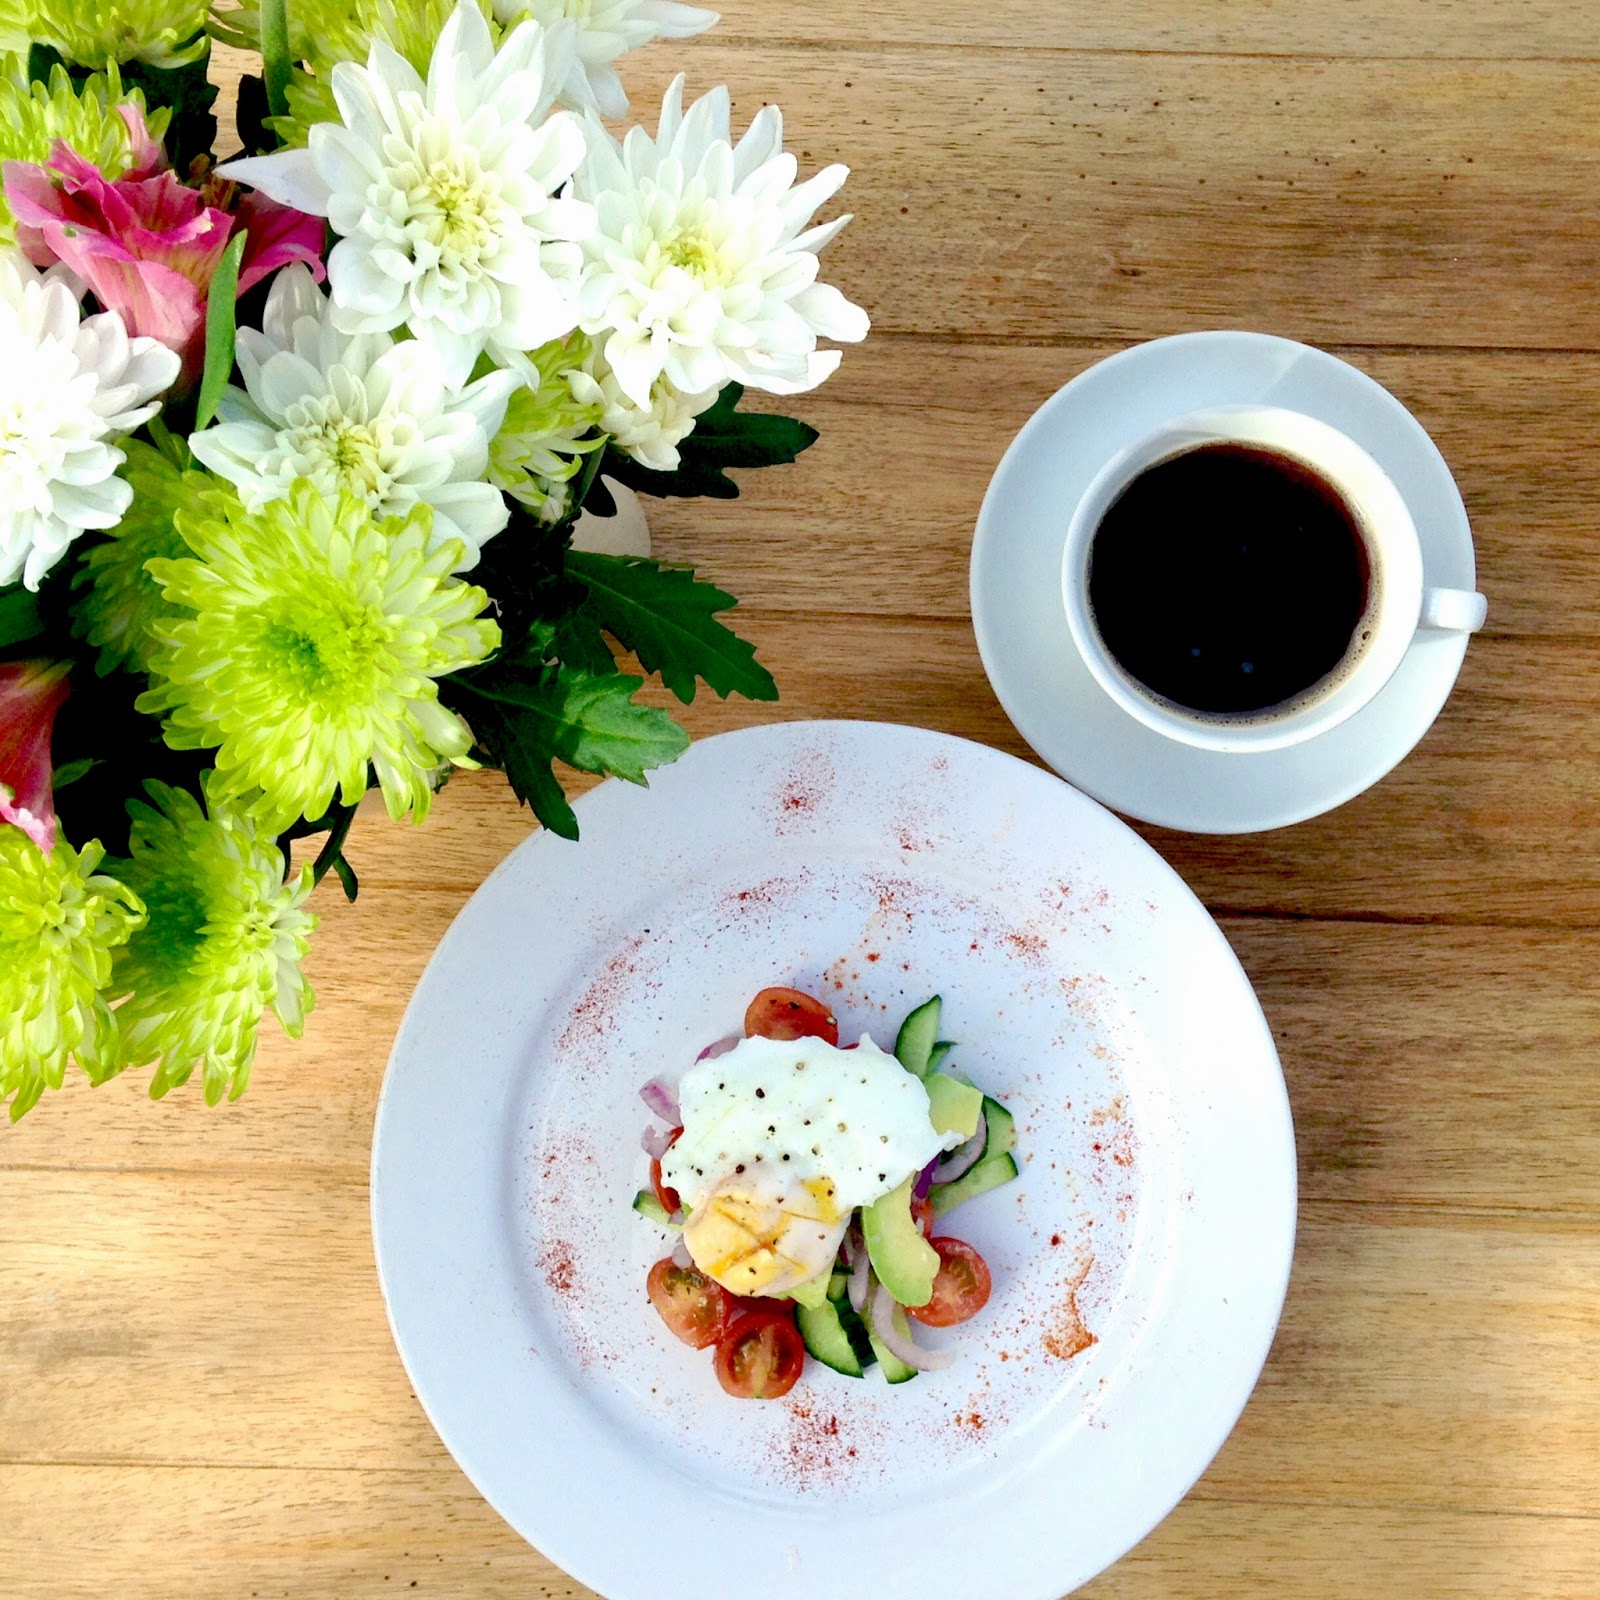 picture eggs and avocado